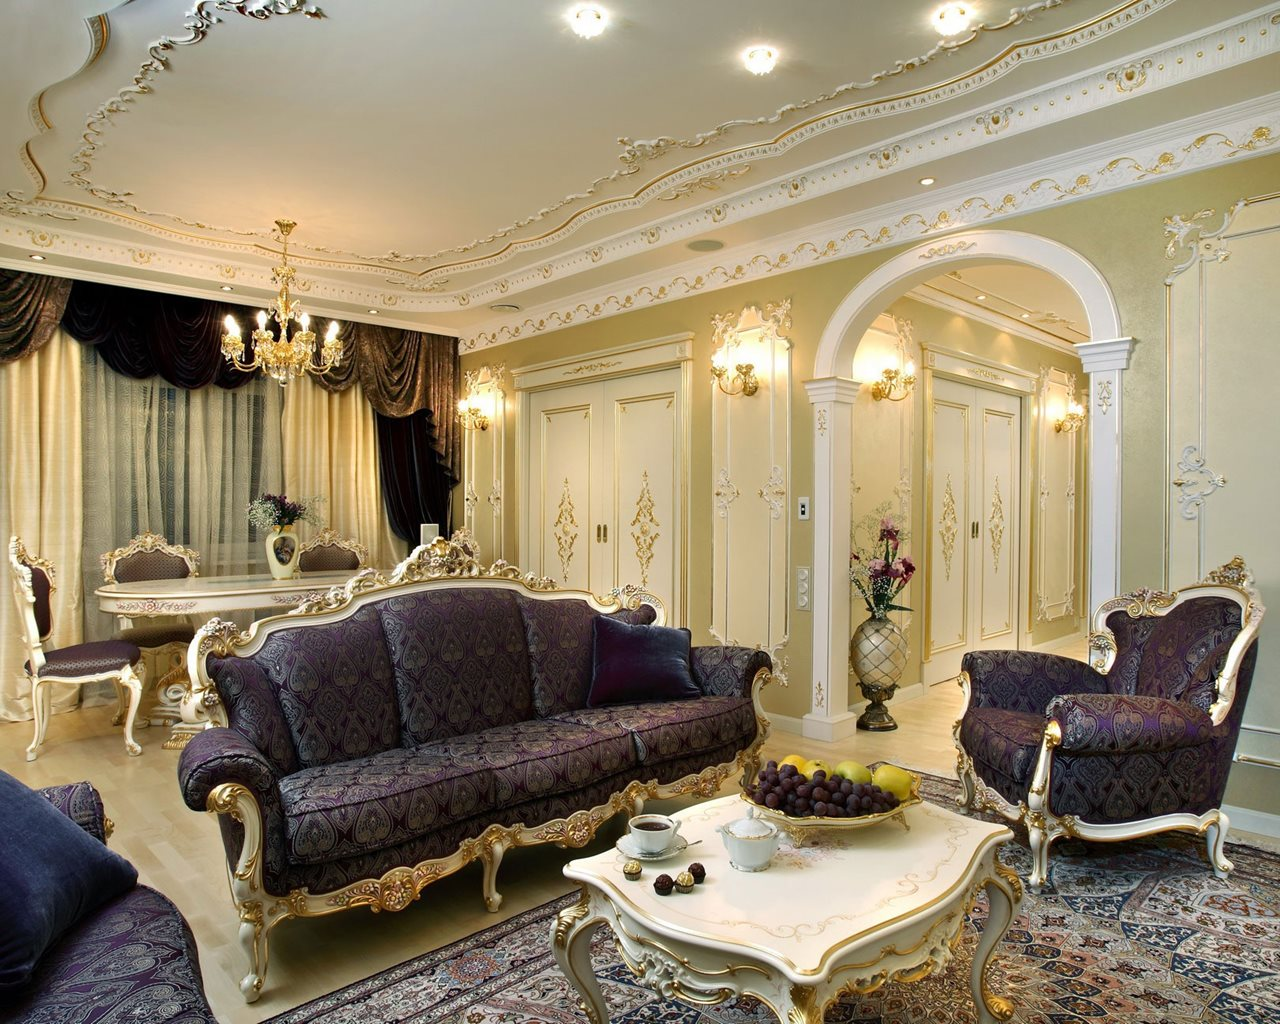 Baroque style interior design ideas for Interieur designer